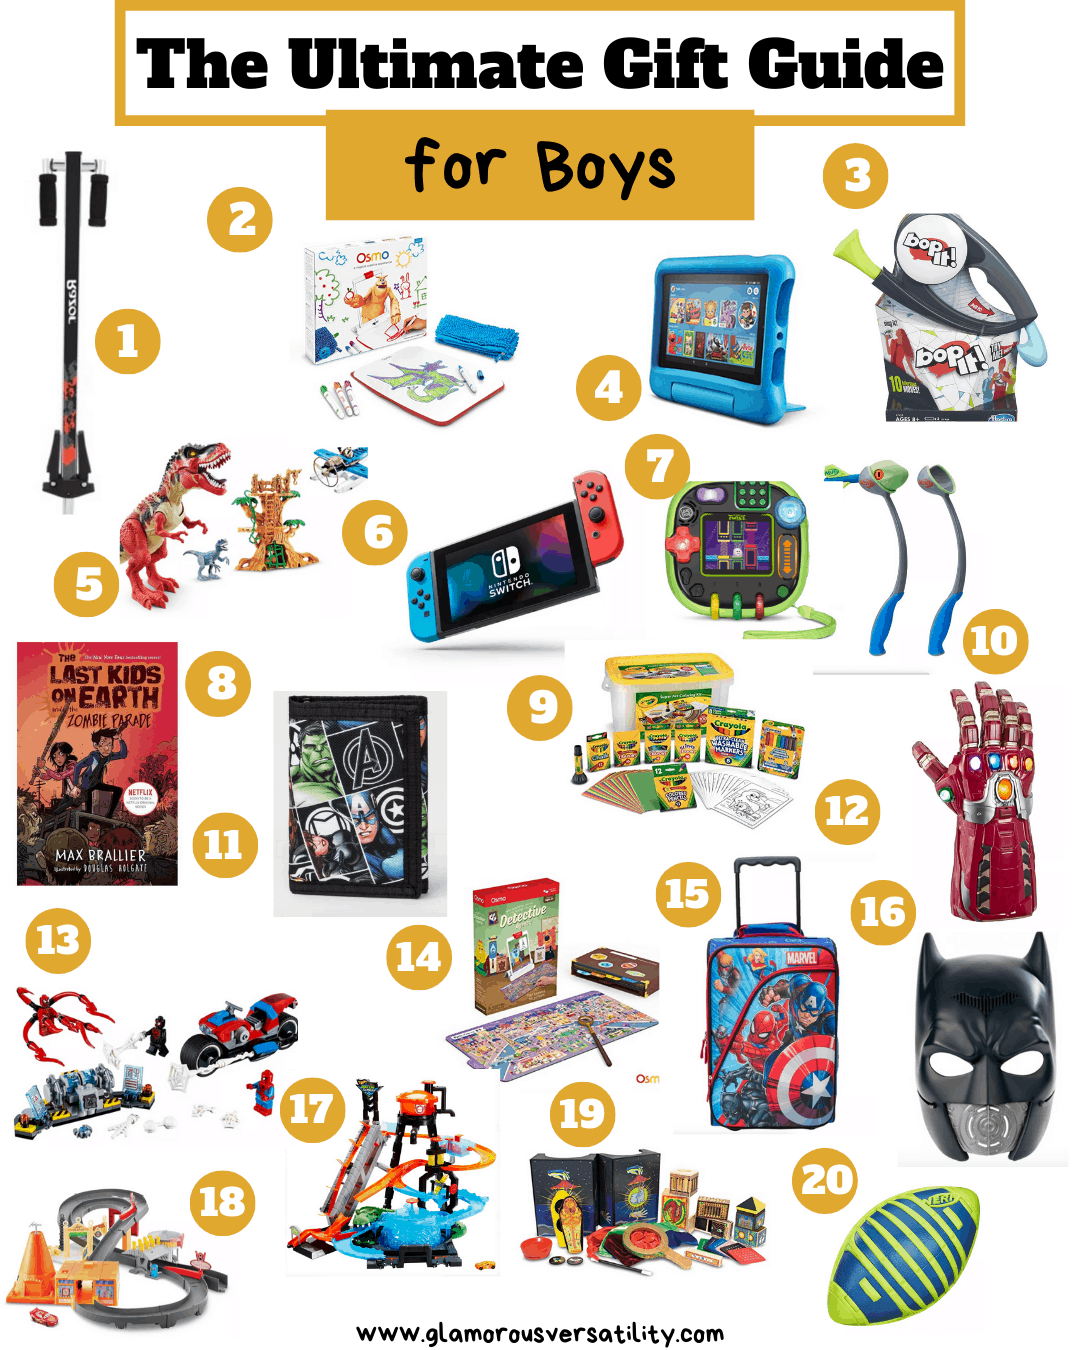 Best Gifts For Boys Holiday Gift Guides Glamorous Versatility